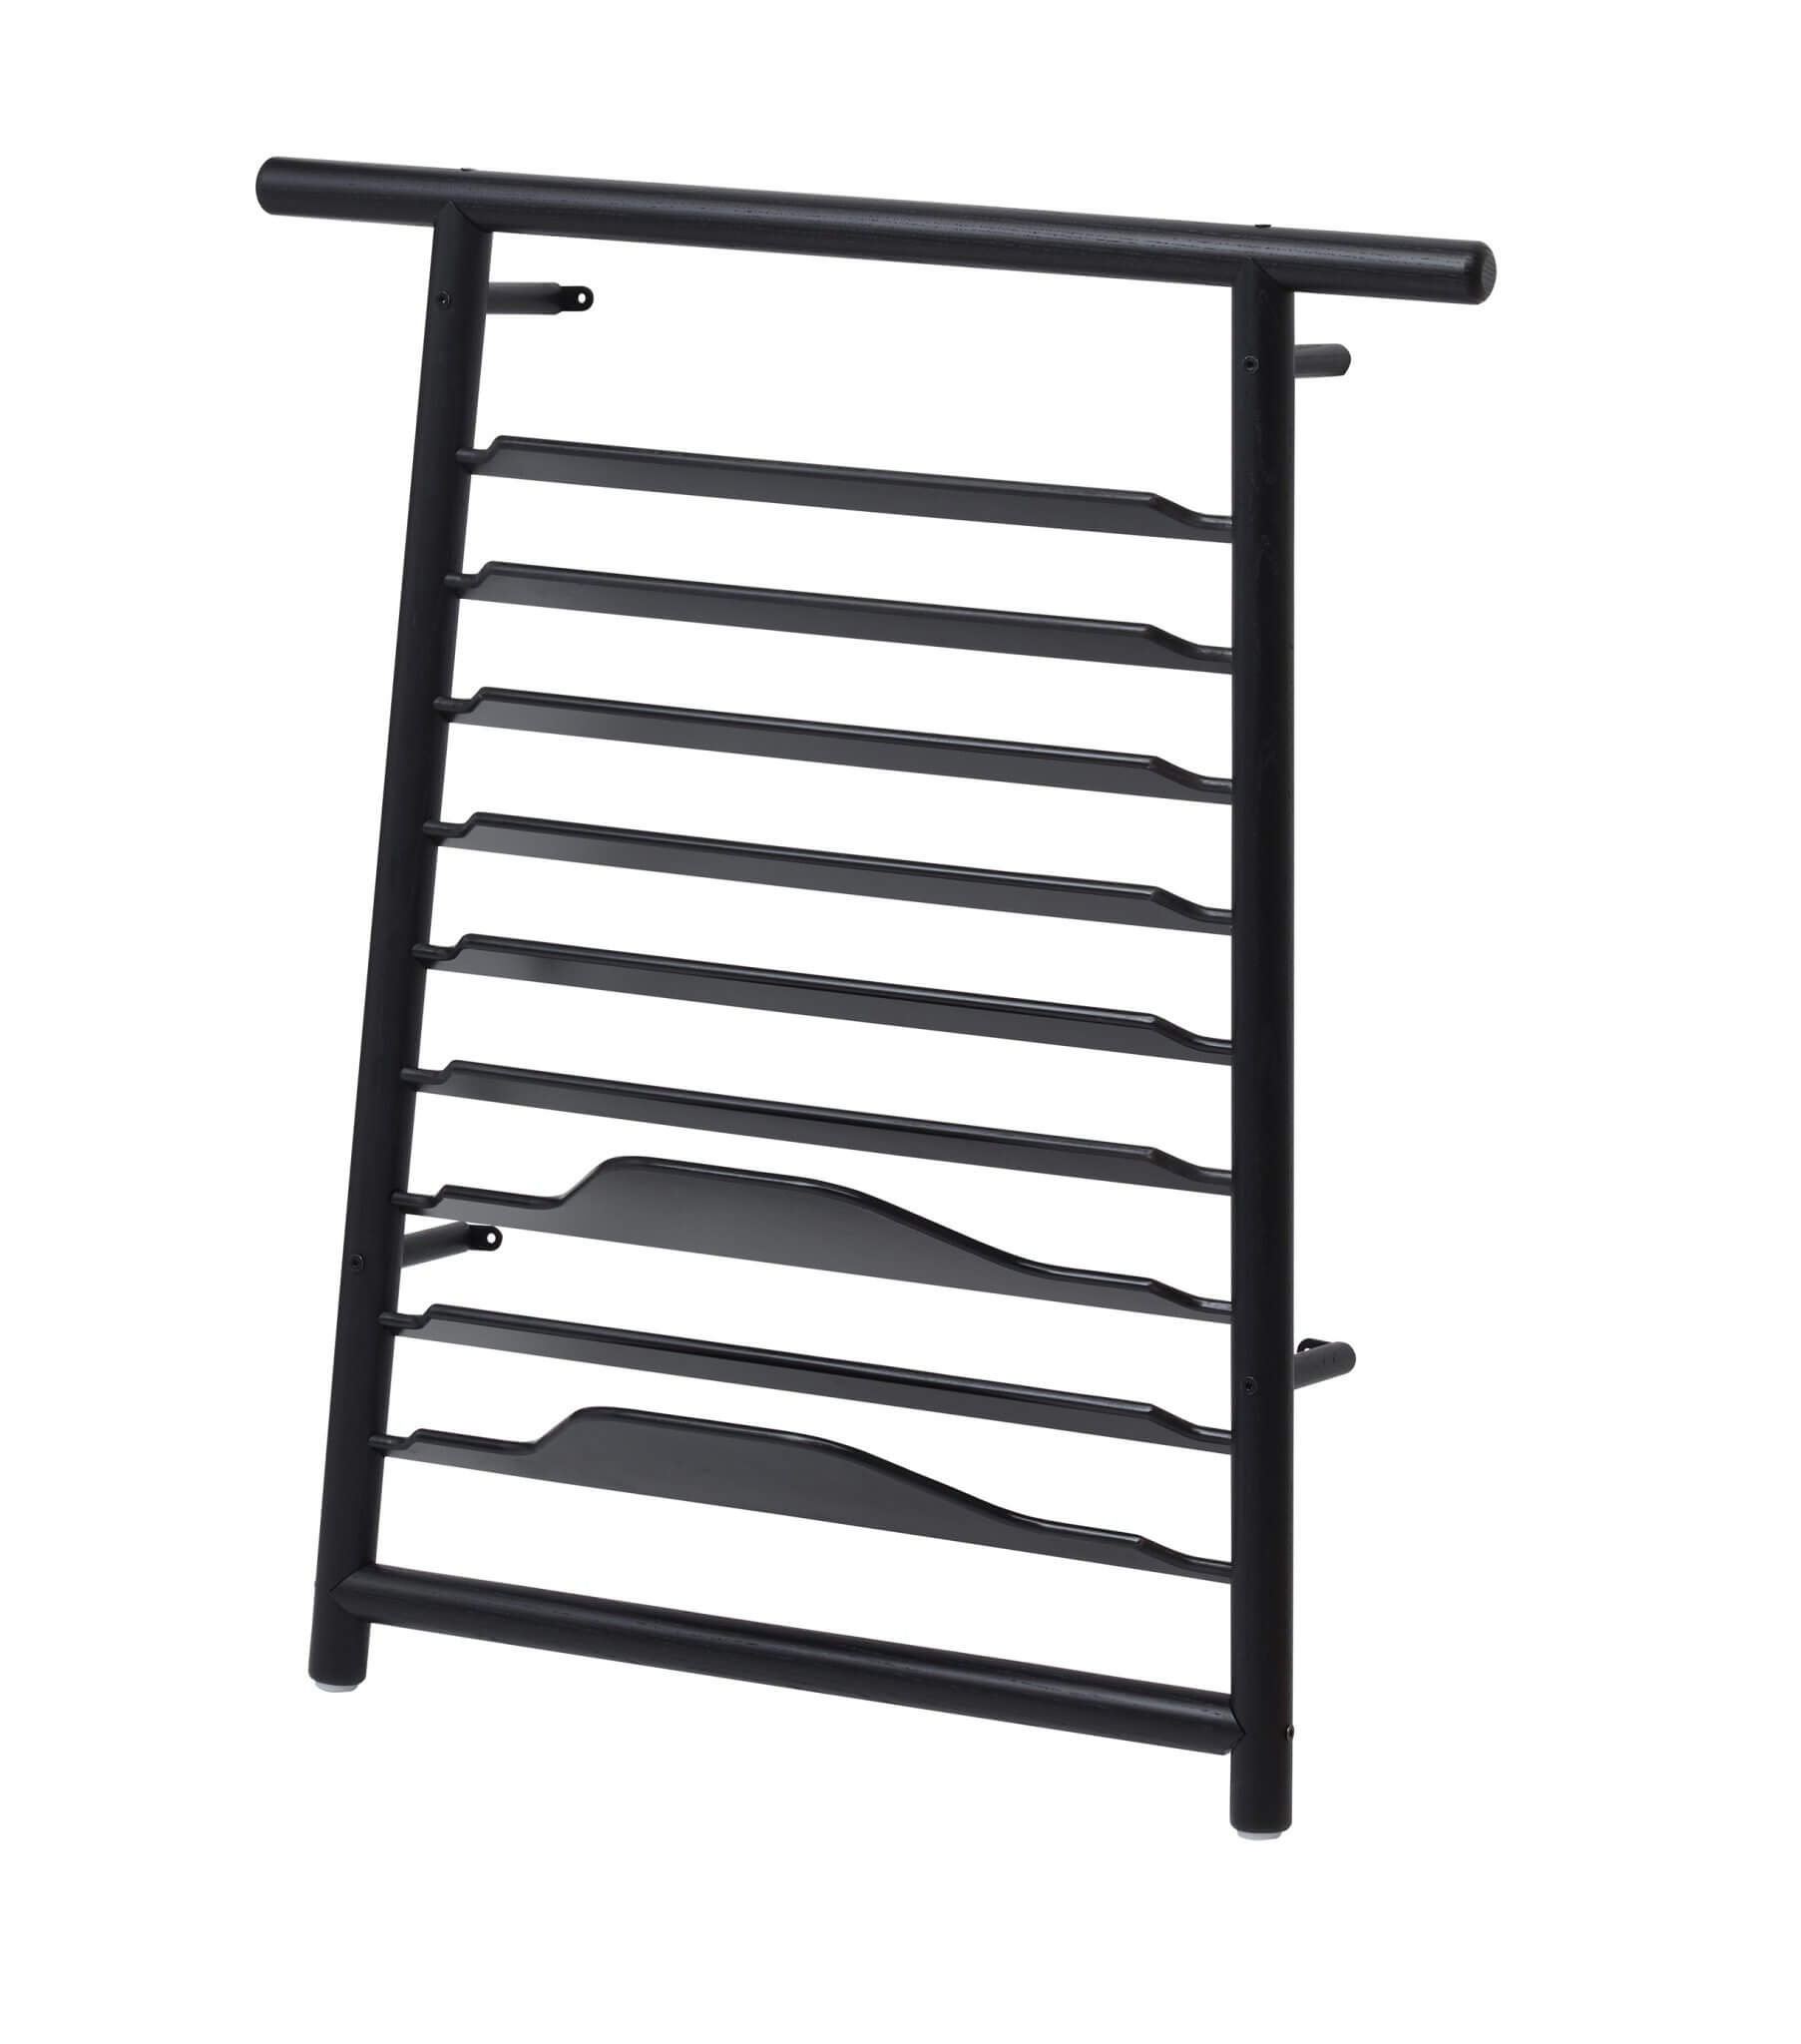 SPANST shoe skateboard rack - $99 - IKEA